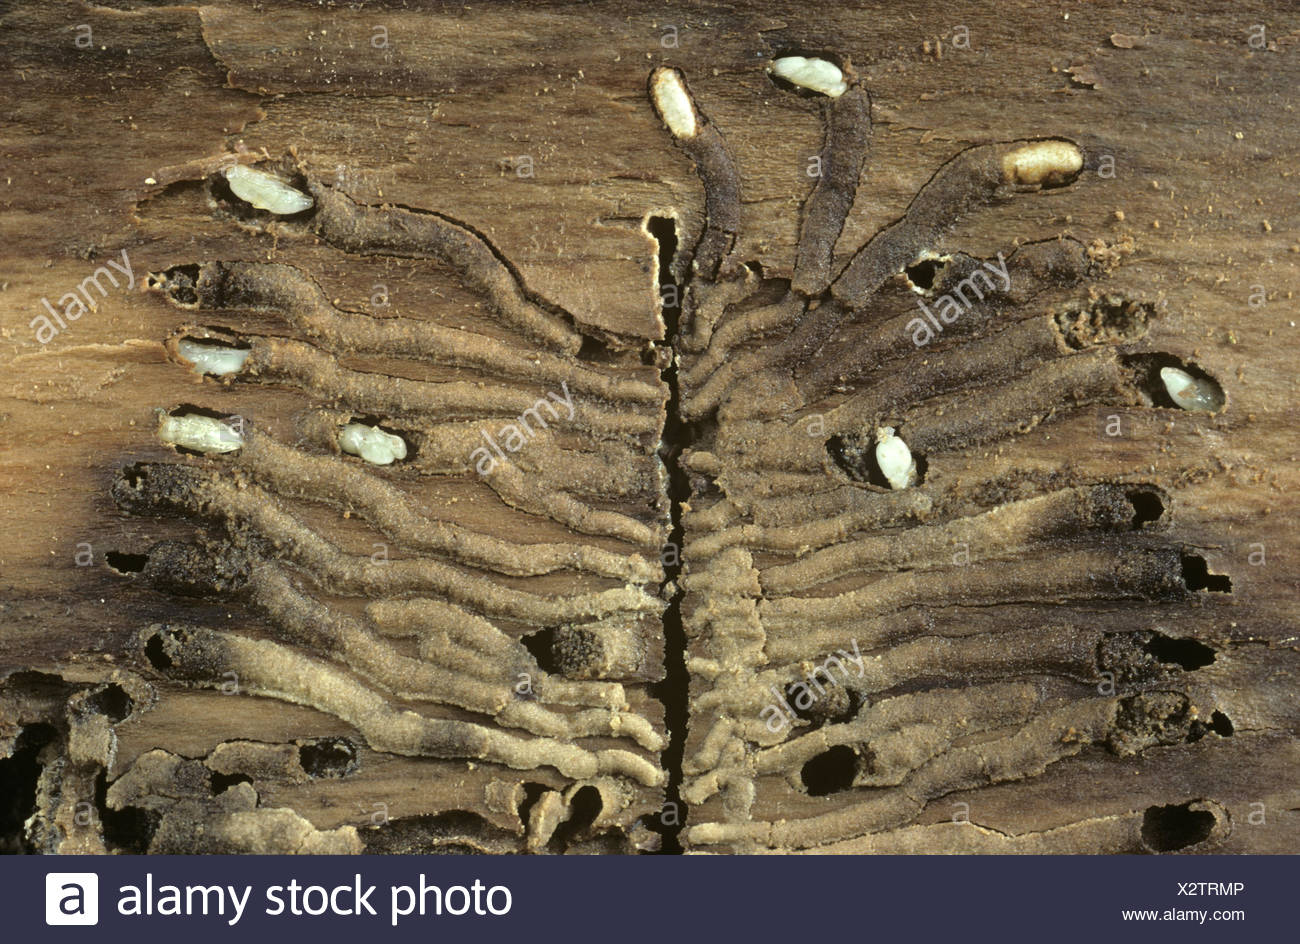 Bark Beetle pupae and galleries - Stock Image